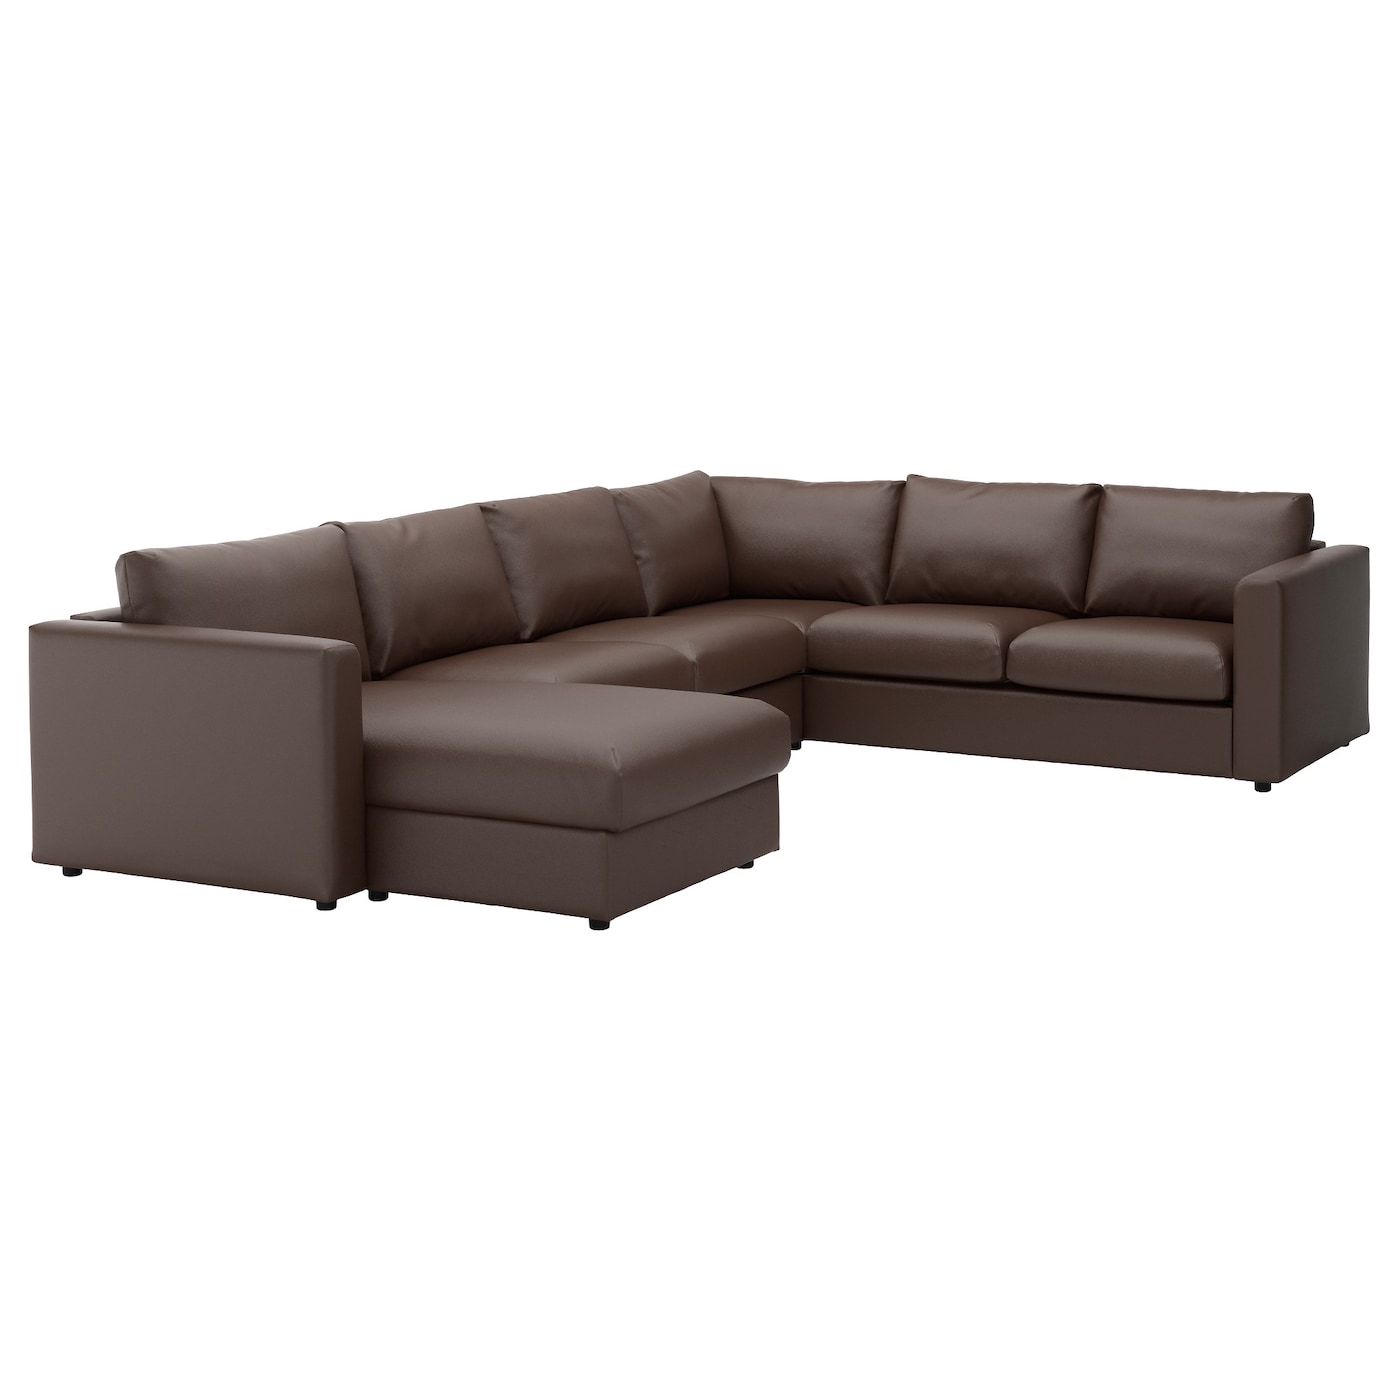 Vimle corner sofa 5 seat with chaise longue farsta dark brown ikea - Chaise pliantes ikea ...